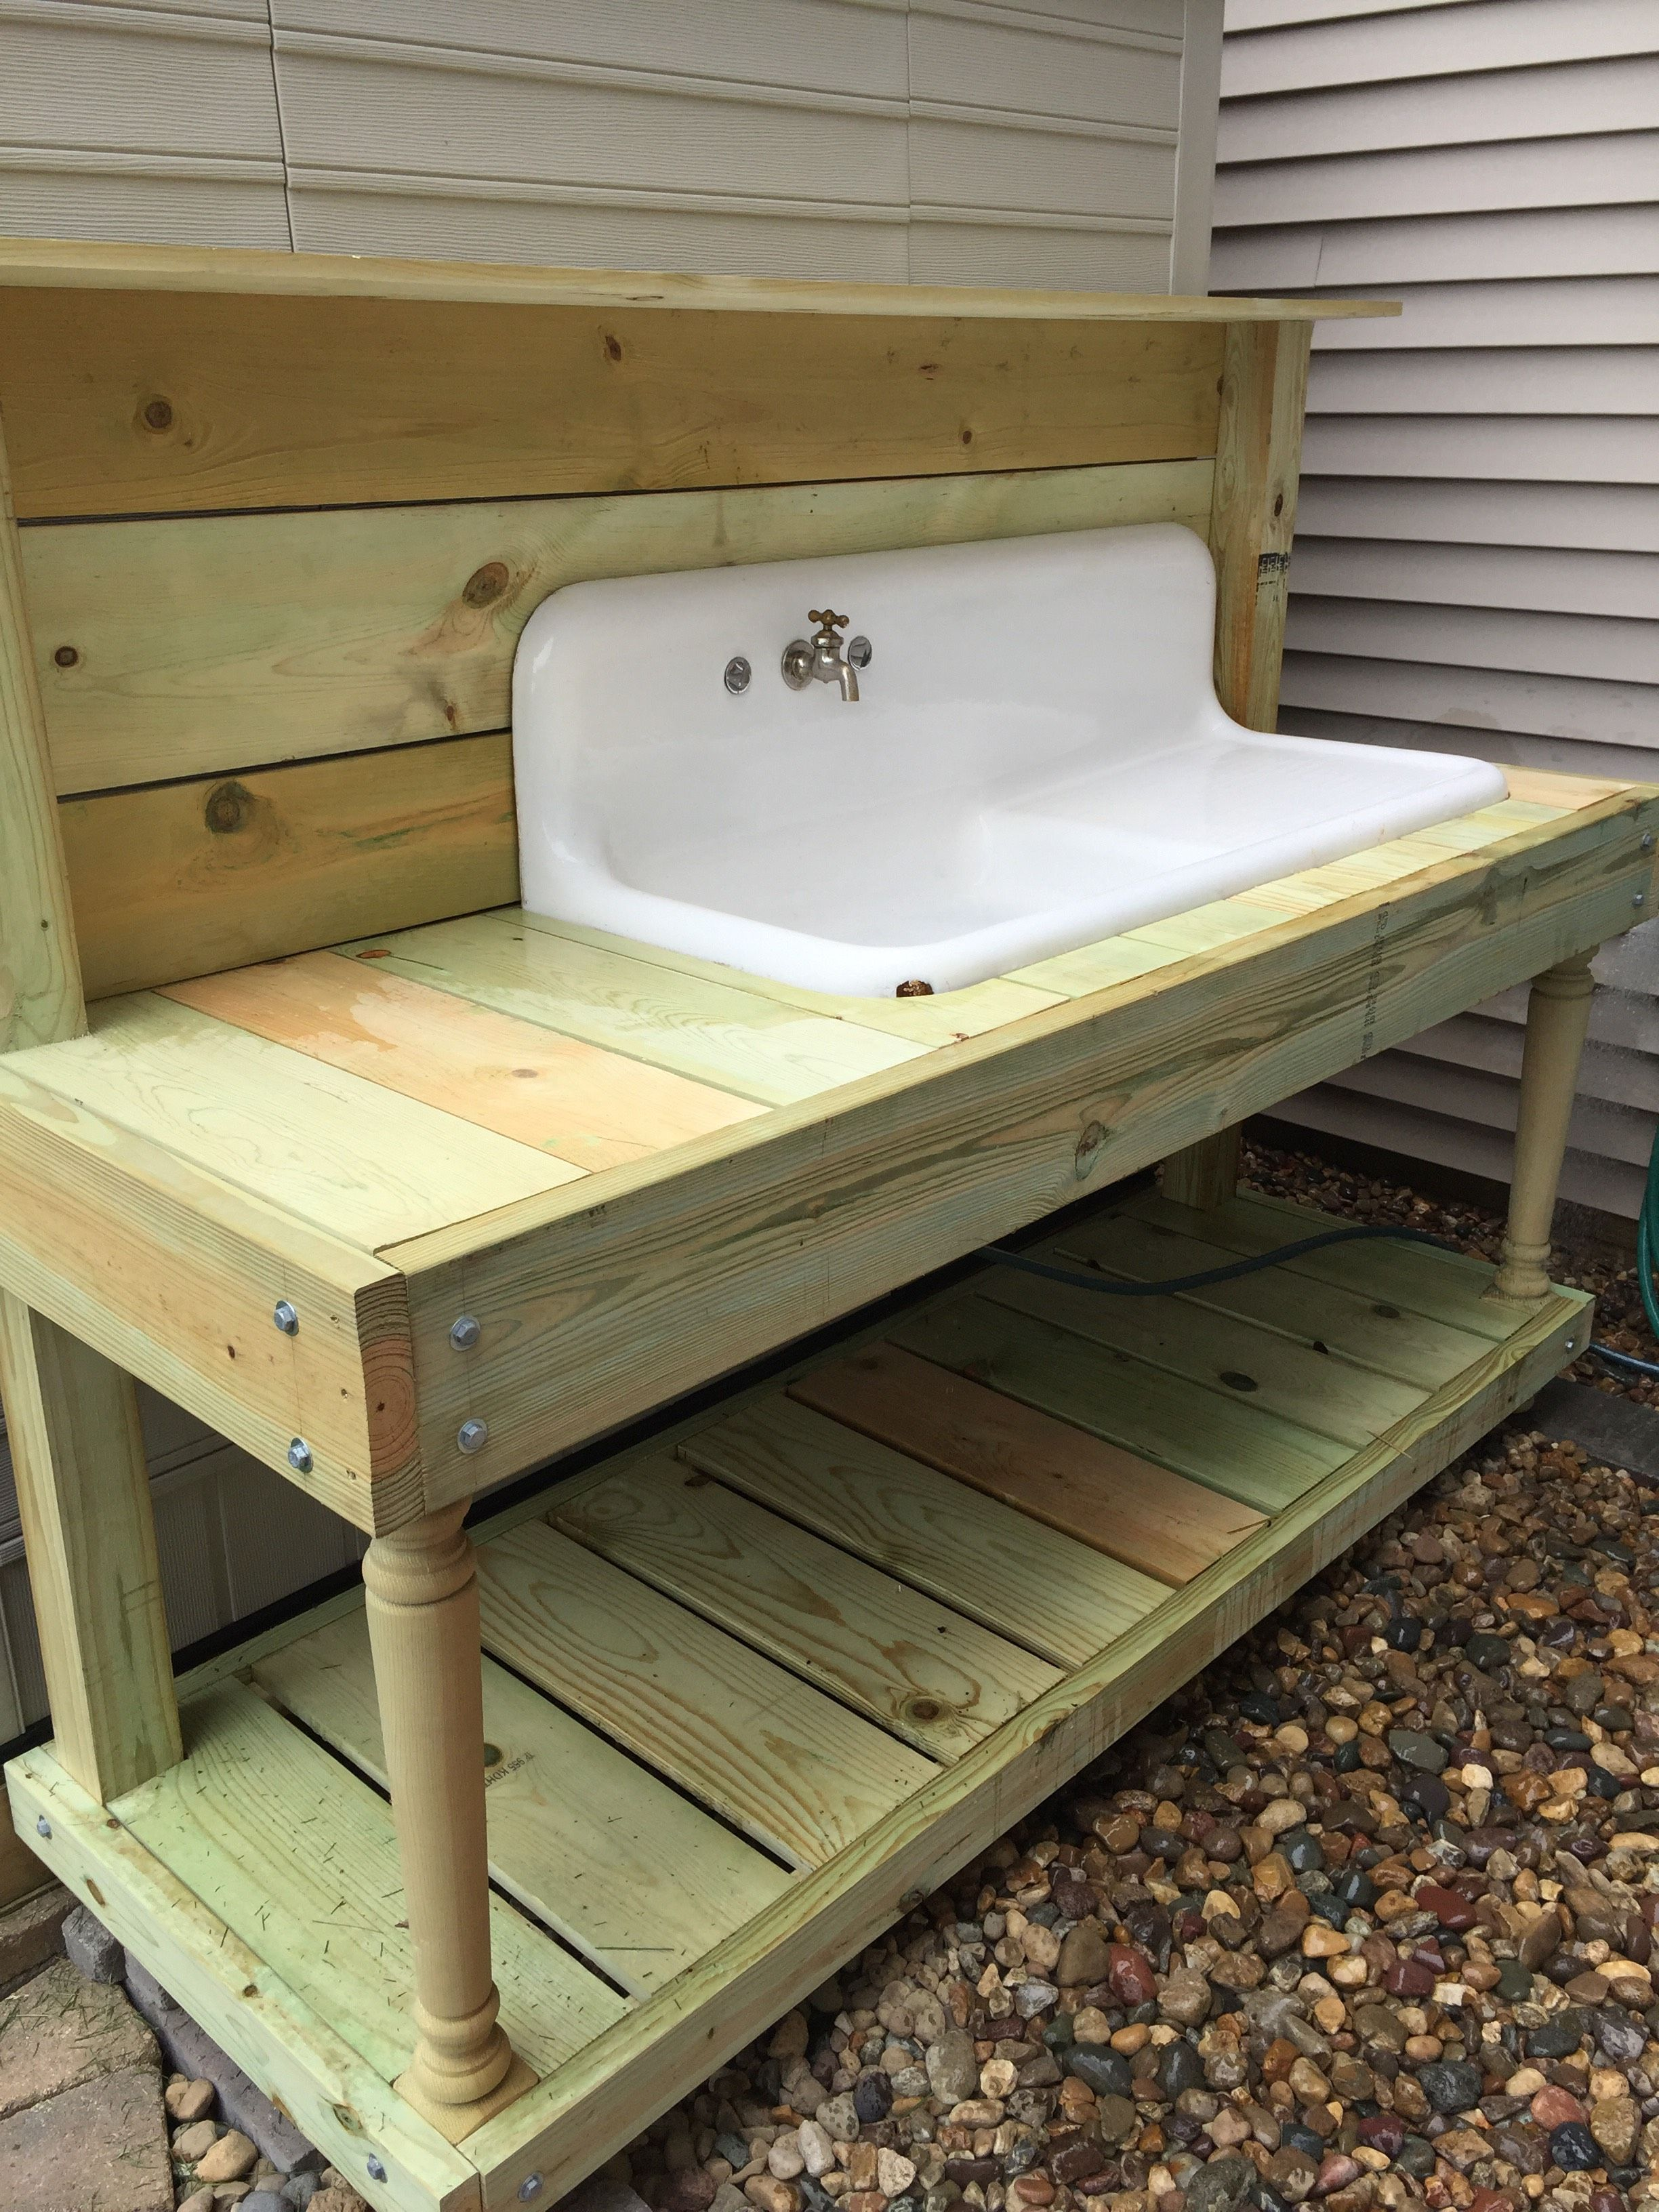 Fine 1920S Farm Sink Turned In To A Garden Potting Bench My Home Interior And Landscaping Ologienasavecom